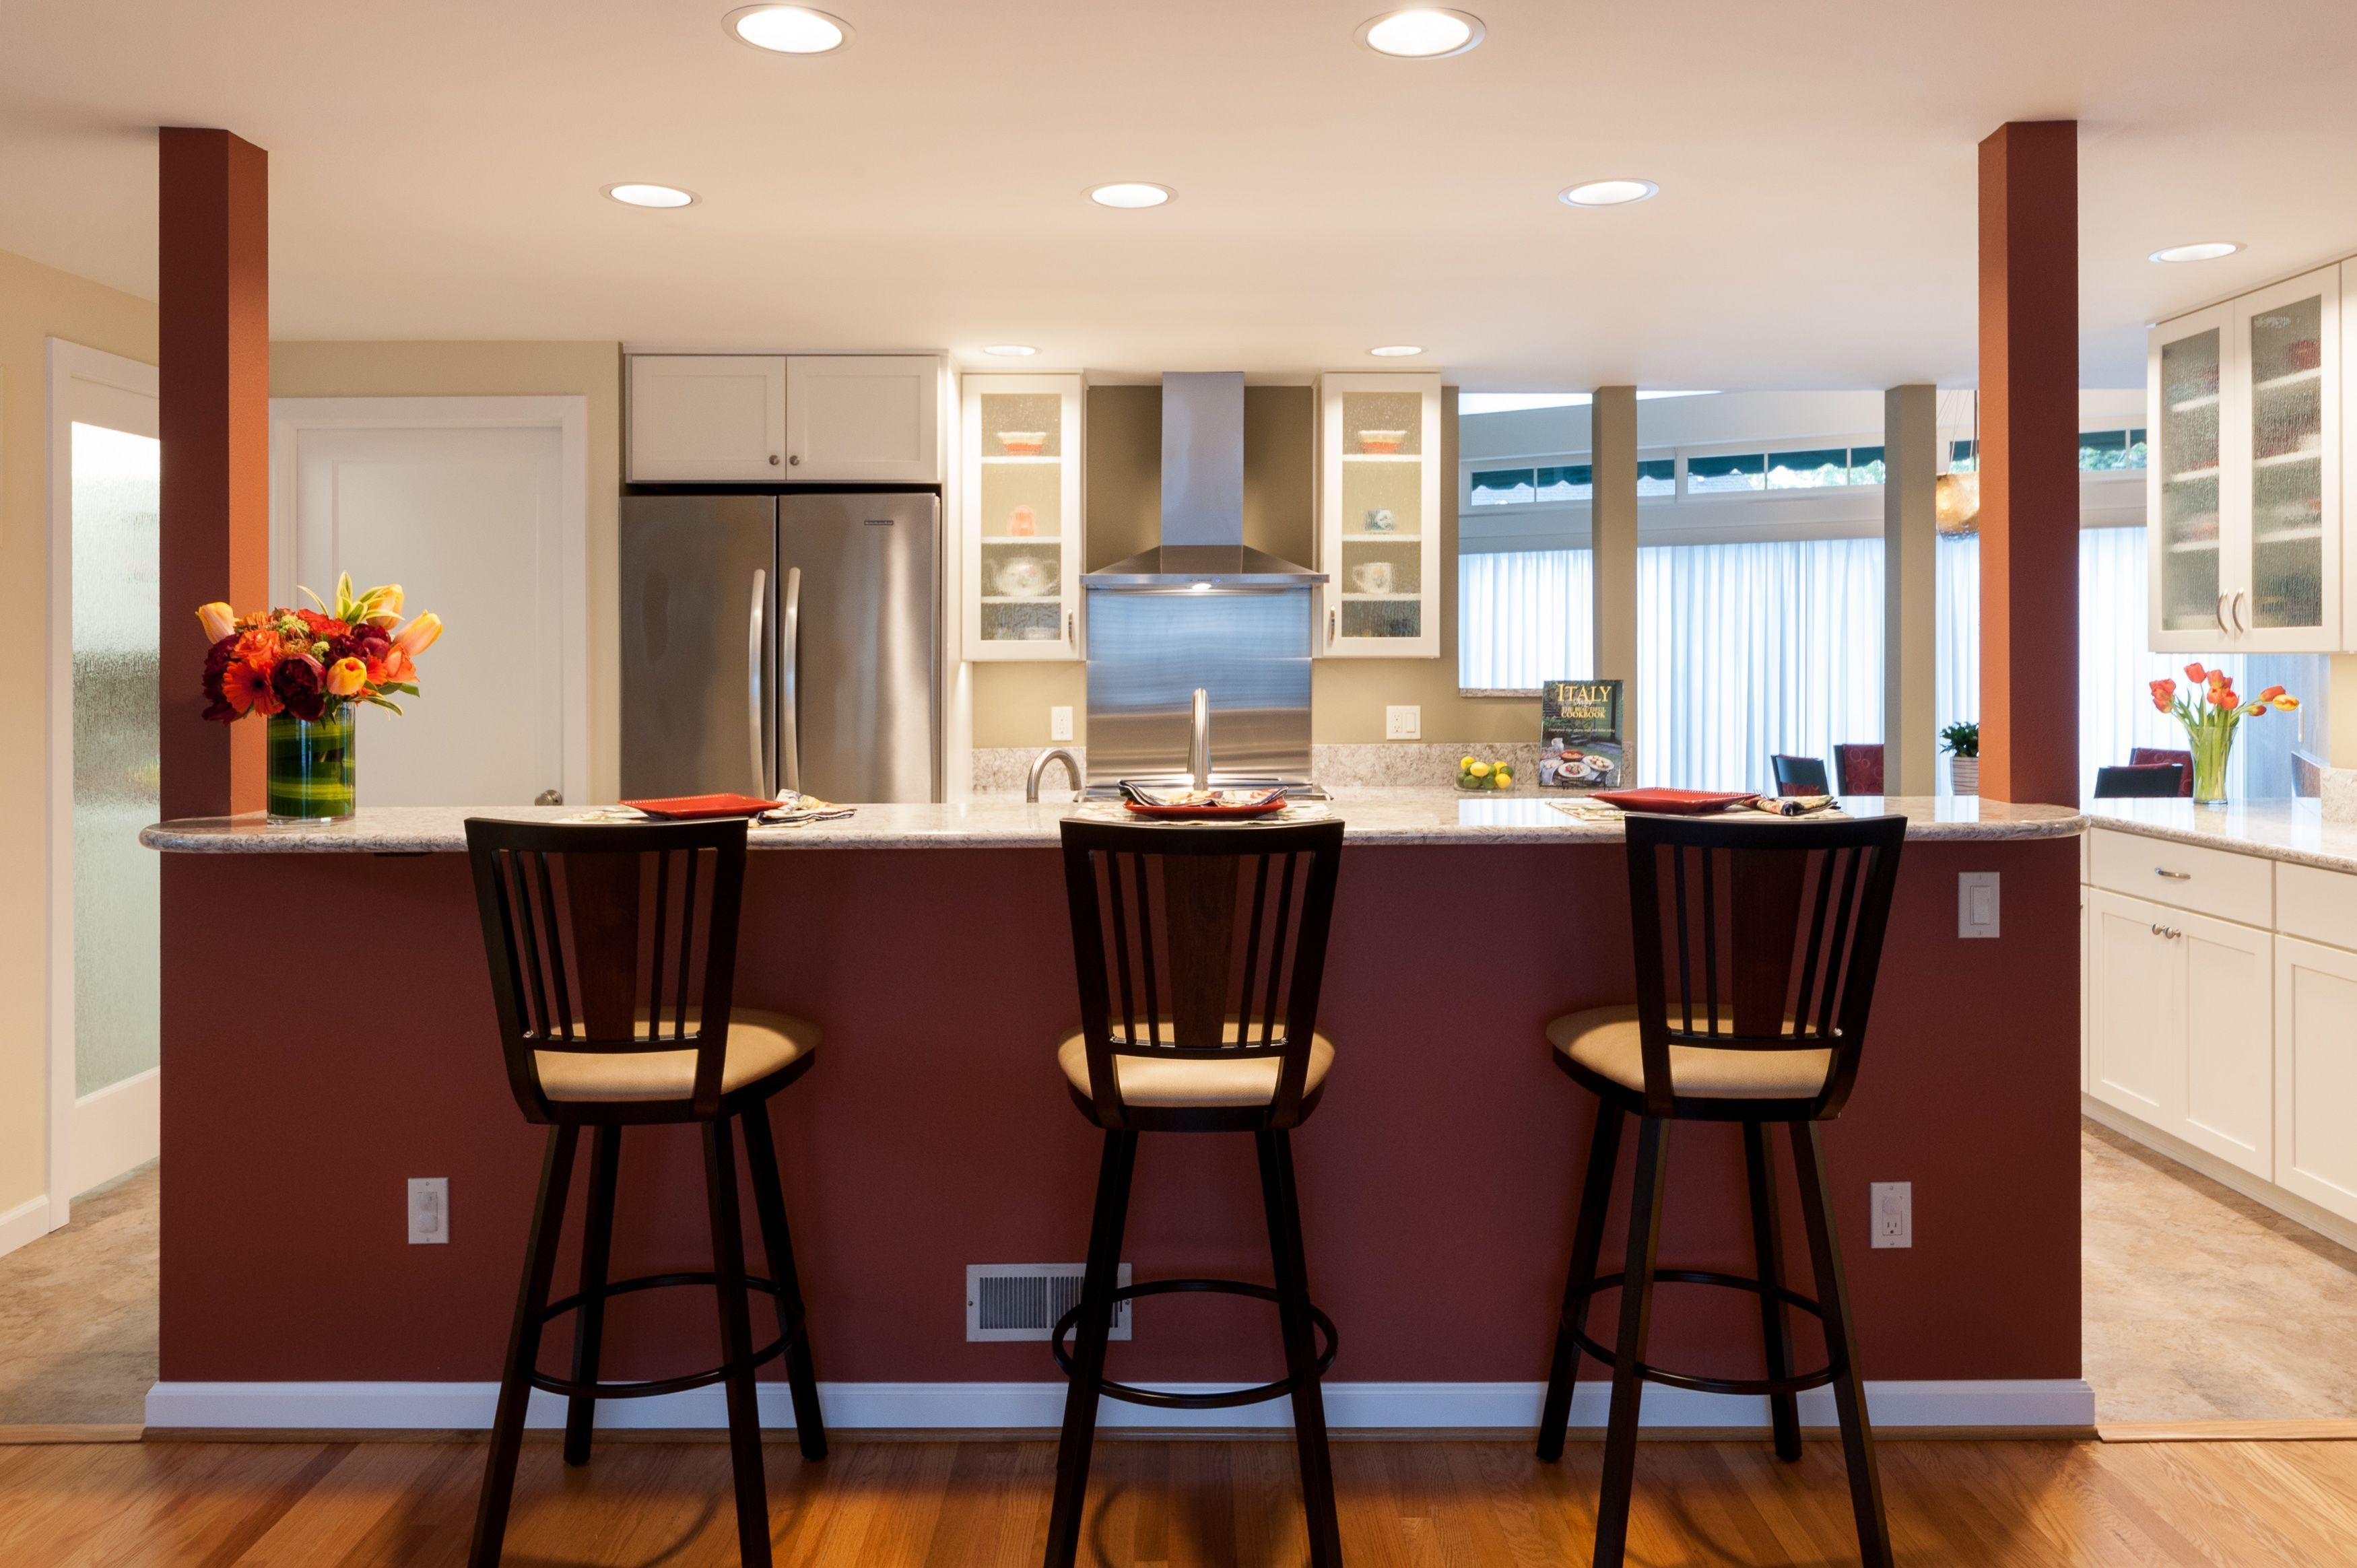 open galley kitchens | Bright Open Galley Kitchen - McAdams Remodeling #opengalleykitchen open galley kitchens | Bright Open Galley Kitchen - McAdams Remodeling #opengalleykitchen open galley kitchens | Bright Open Galley Kitchen - McAdams Remodeling #opengalleykitchen open galley kitchens | Bright Open Galley Kitchen - McAdams Remodeling #opengalleykitchen open galley kitchens | Bright Open Galley Kitchen - McAdams Remodeling #opengalleykitchen open galley kitchens | Bright Open Galley Kitchen #opengalleykitchen